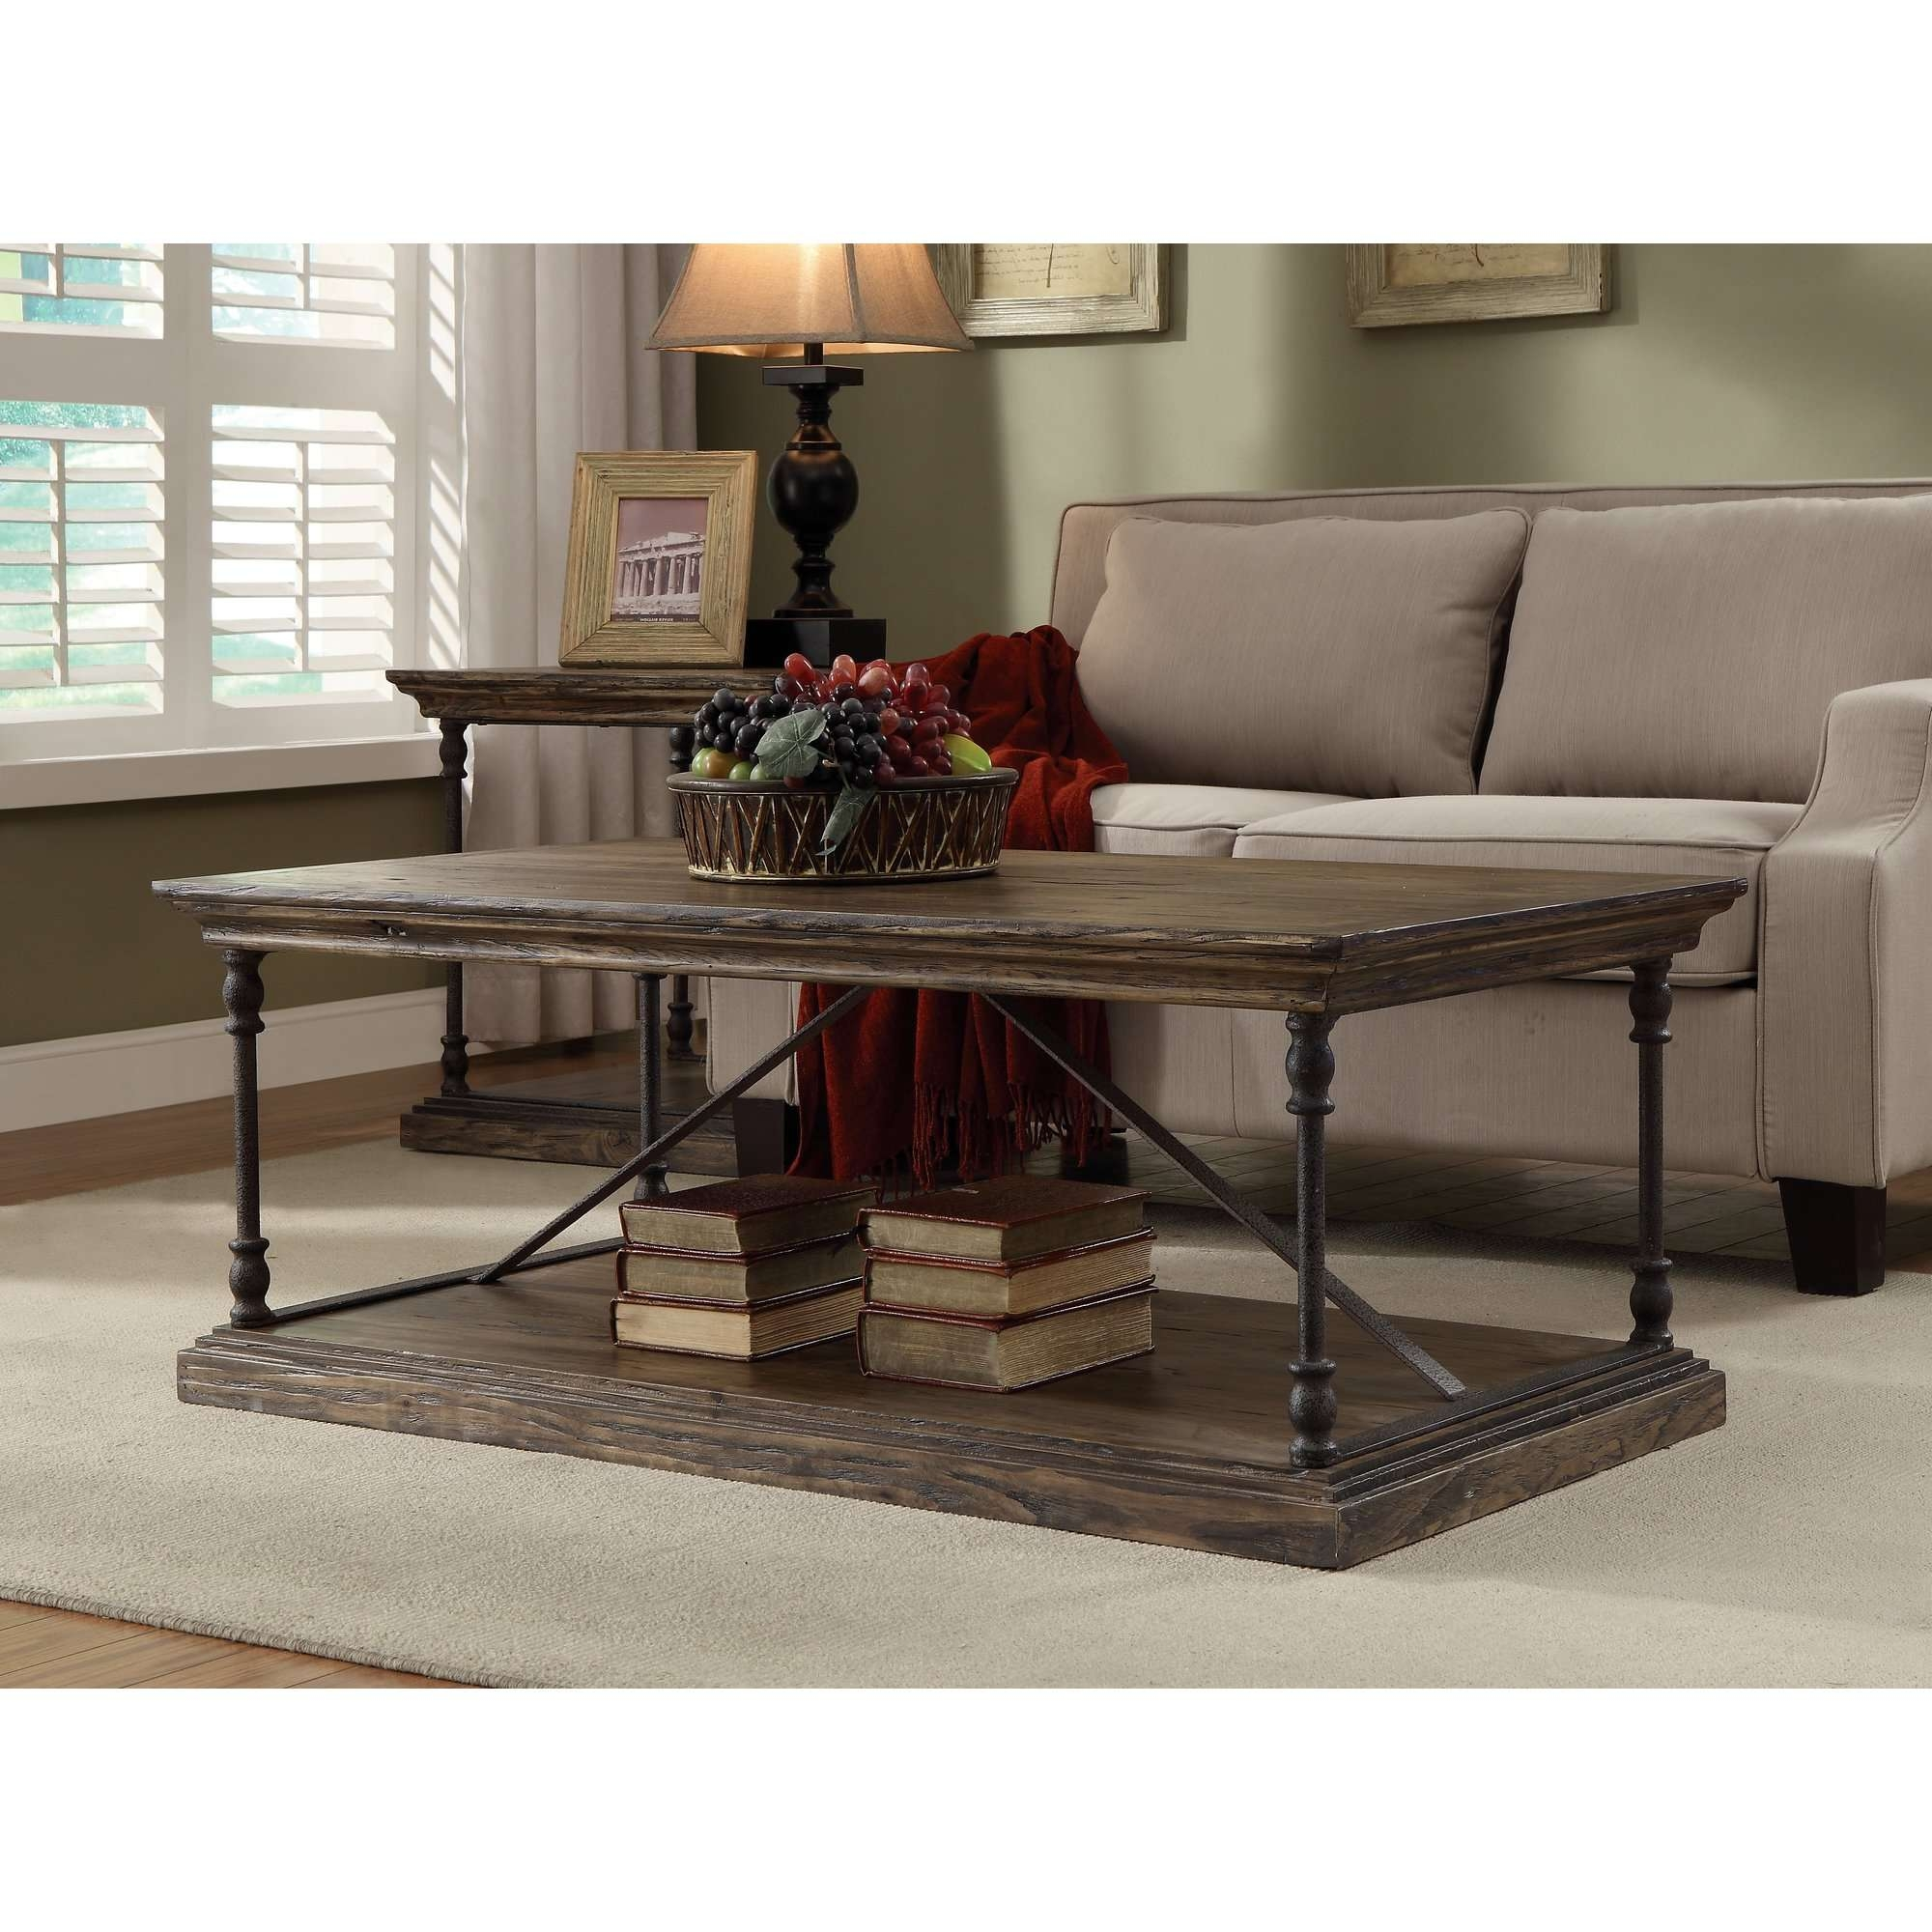 X Px Favorites Table Of Joss And Main Center Delectable Careers Y Pertaining To Trendy Joss And Main Coffee Tables (View 7 of 20)